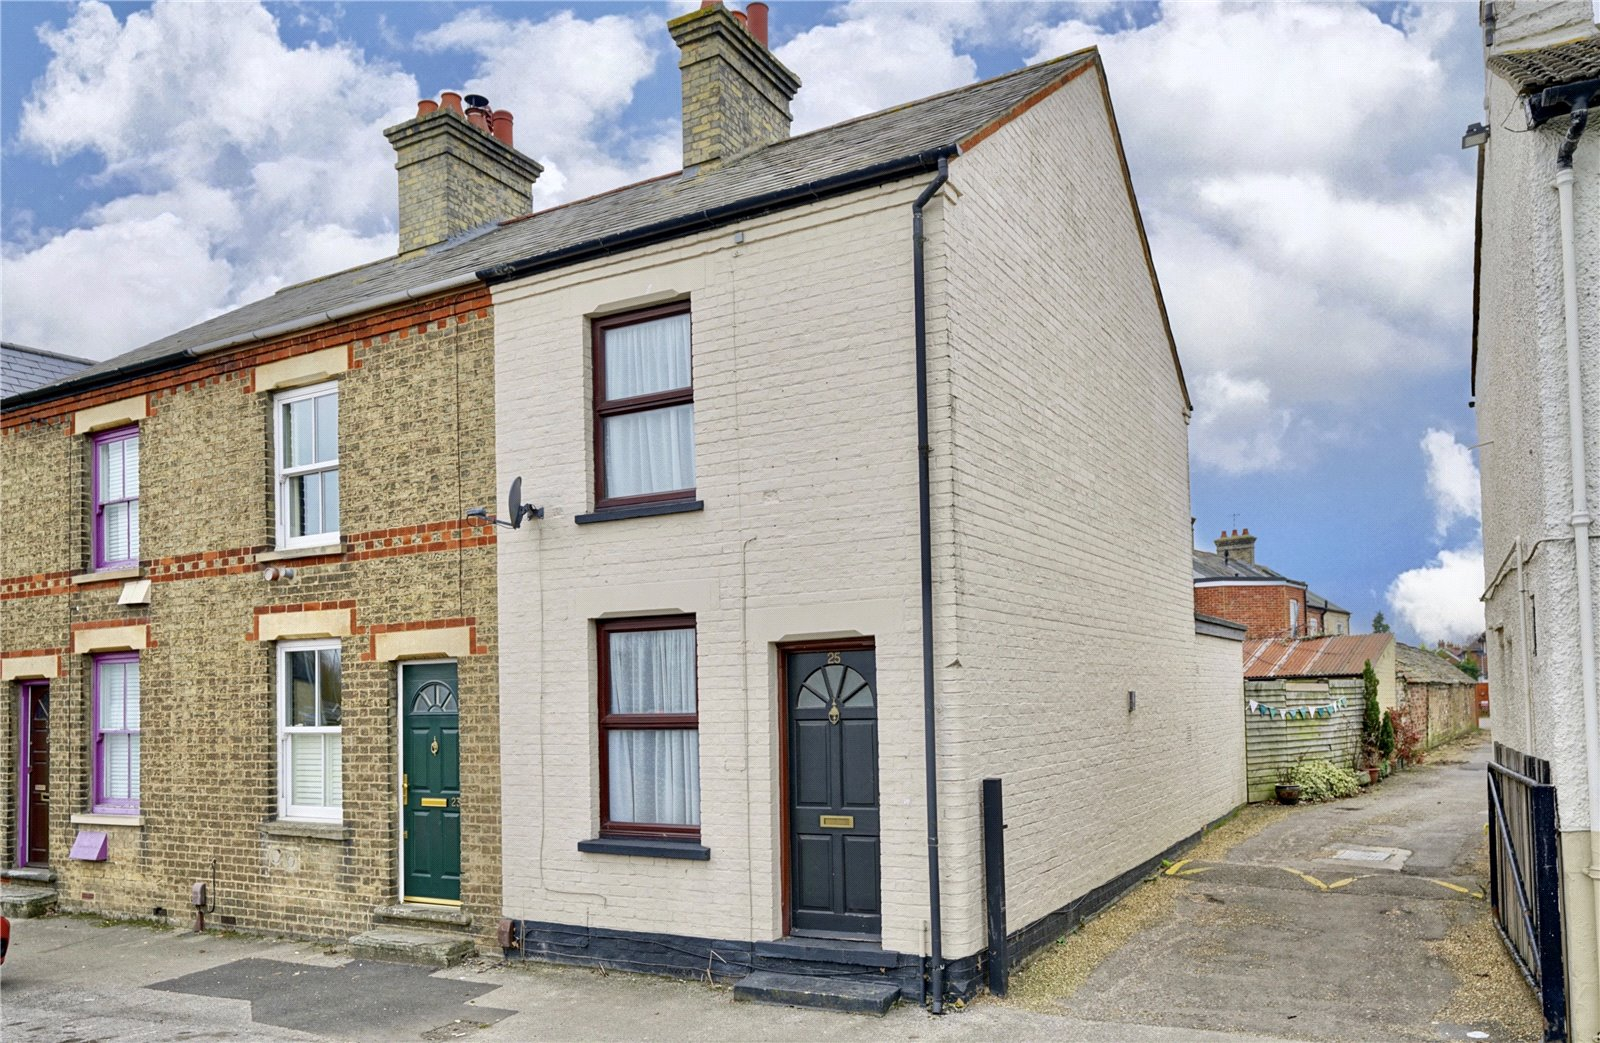 2 bed house for sale in Eaton Ford, PE19 7AB, PE19